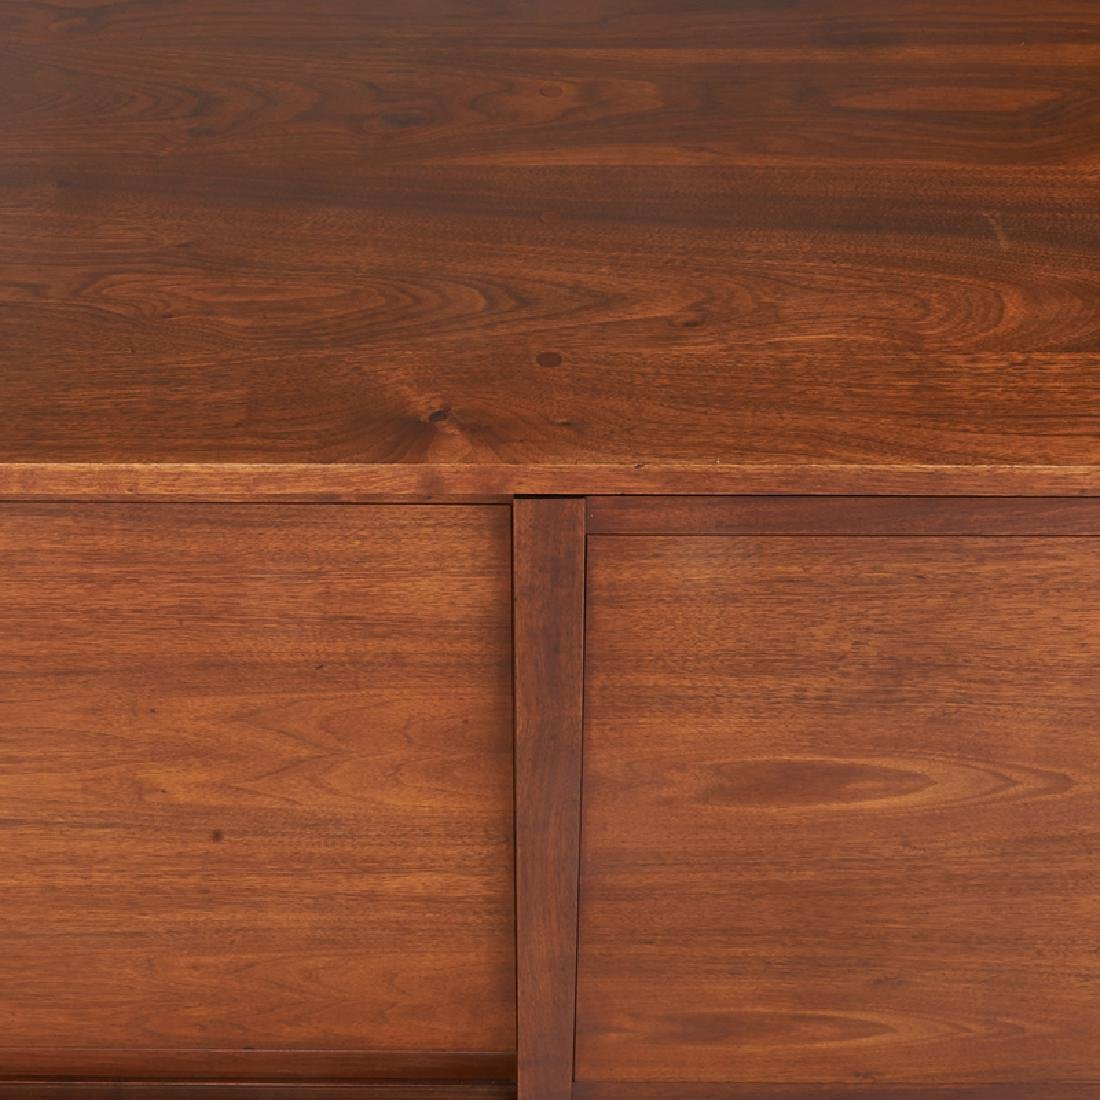 GEORGE NAKASHIMA Sliding Door Cabinet - 6